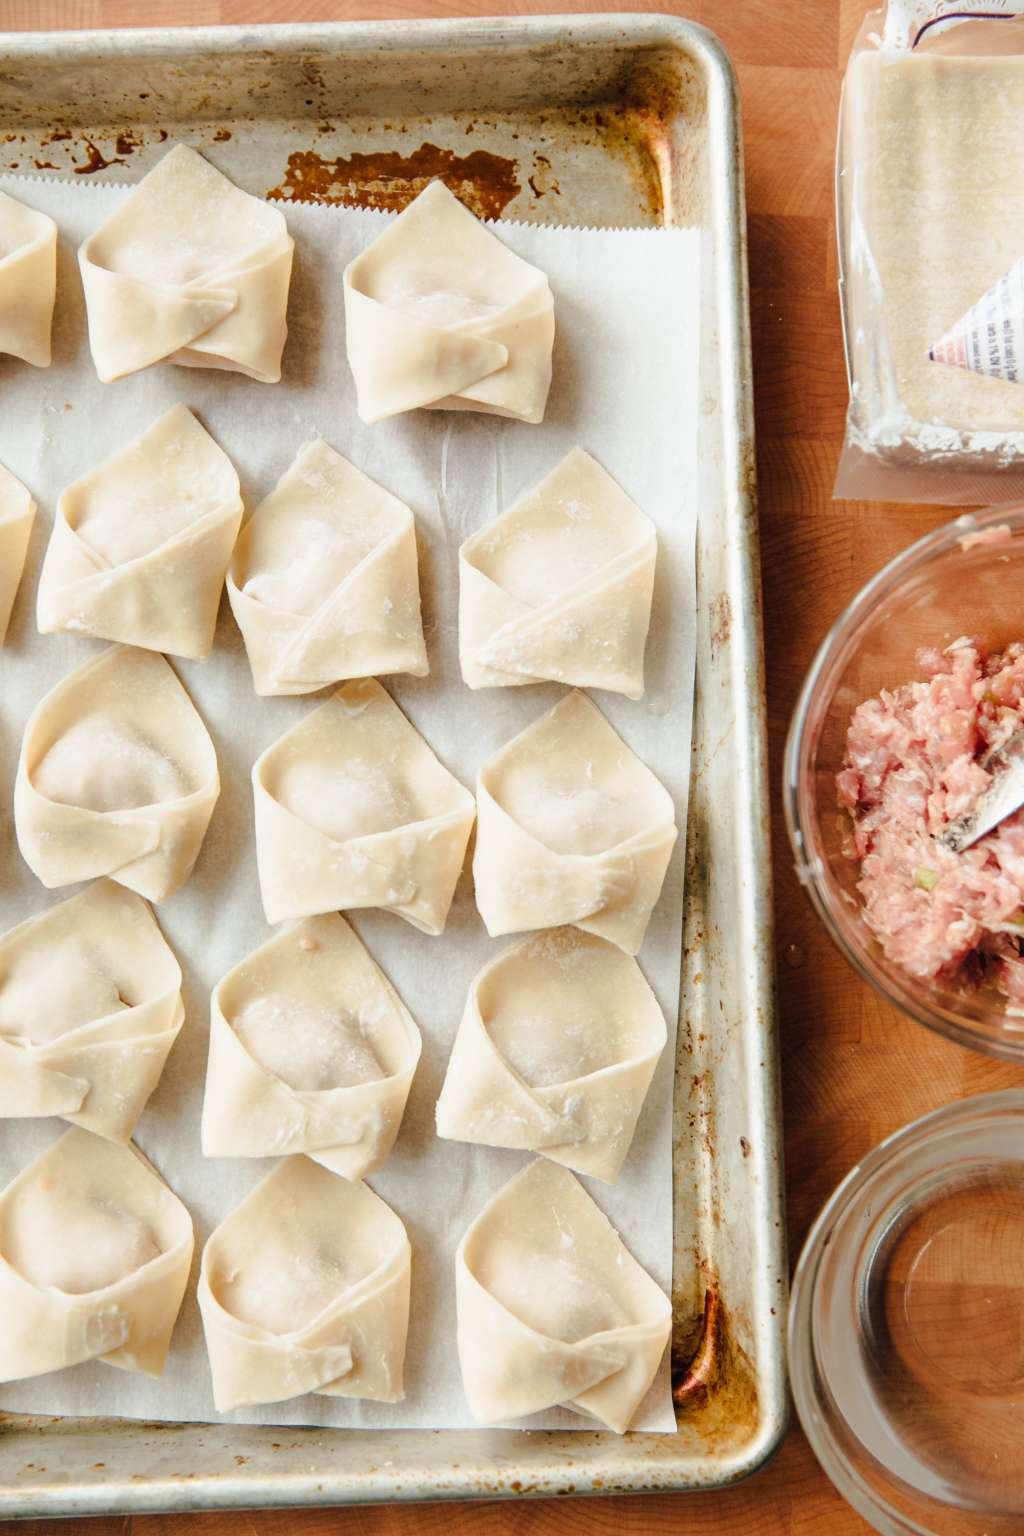 How To Fold Wonton Dumplings